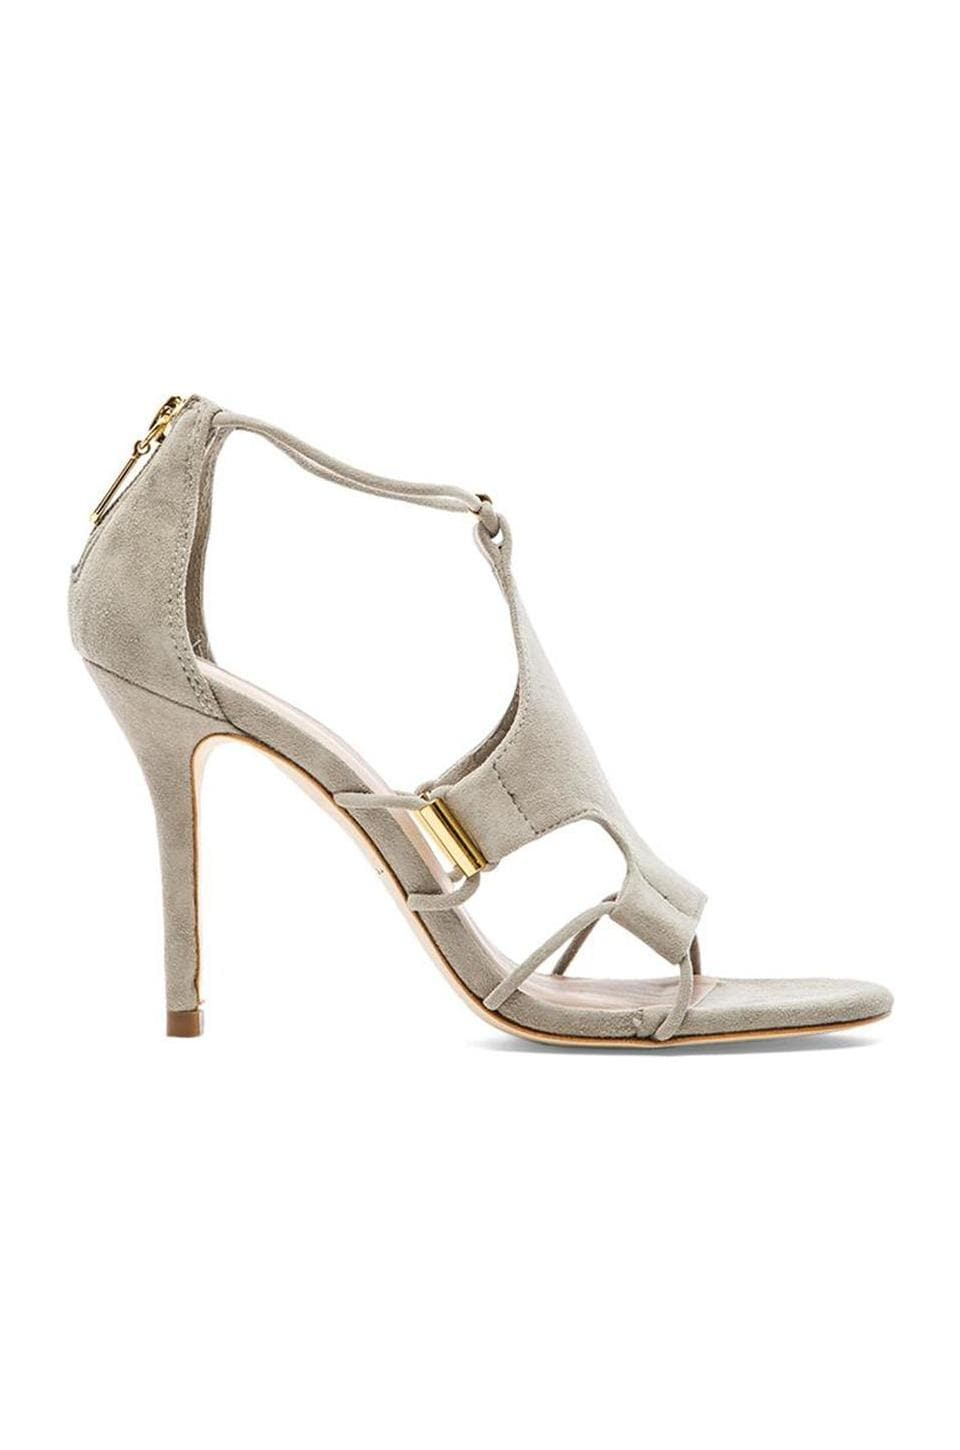 Trina Turk Lucca Heel in Taupe Suede